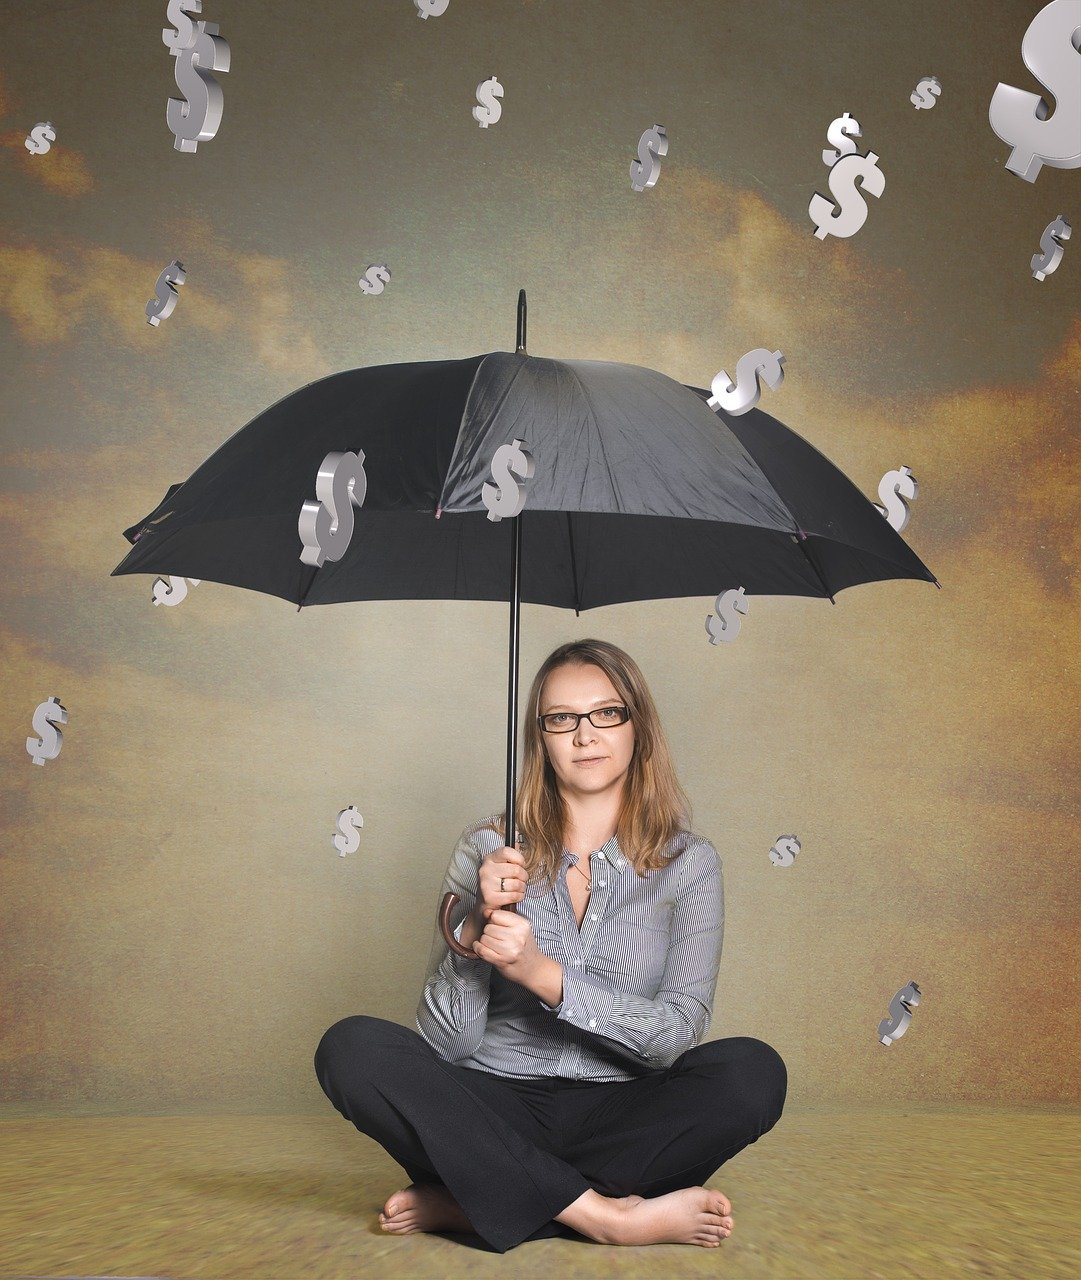 5 Shared Traits of Recession-Proof Businesses